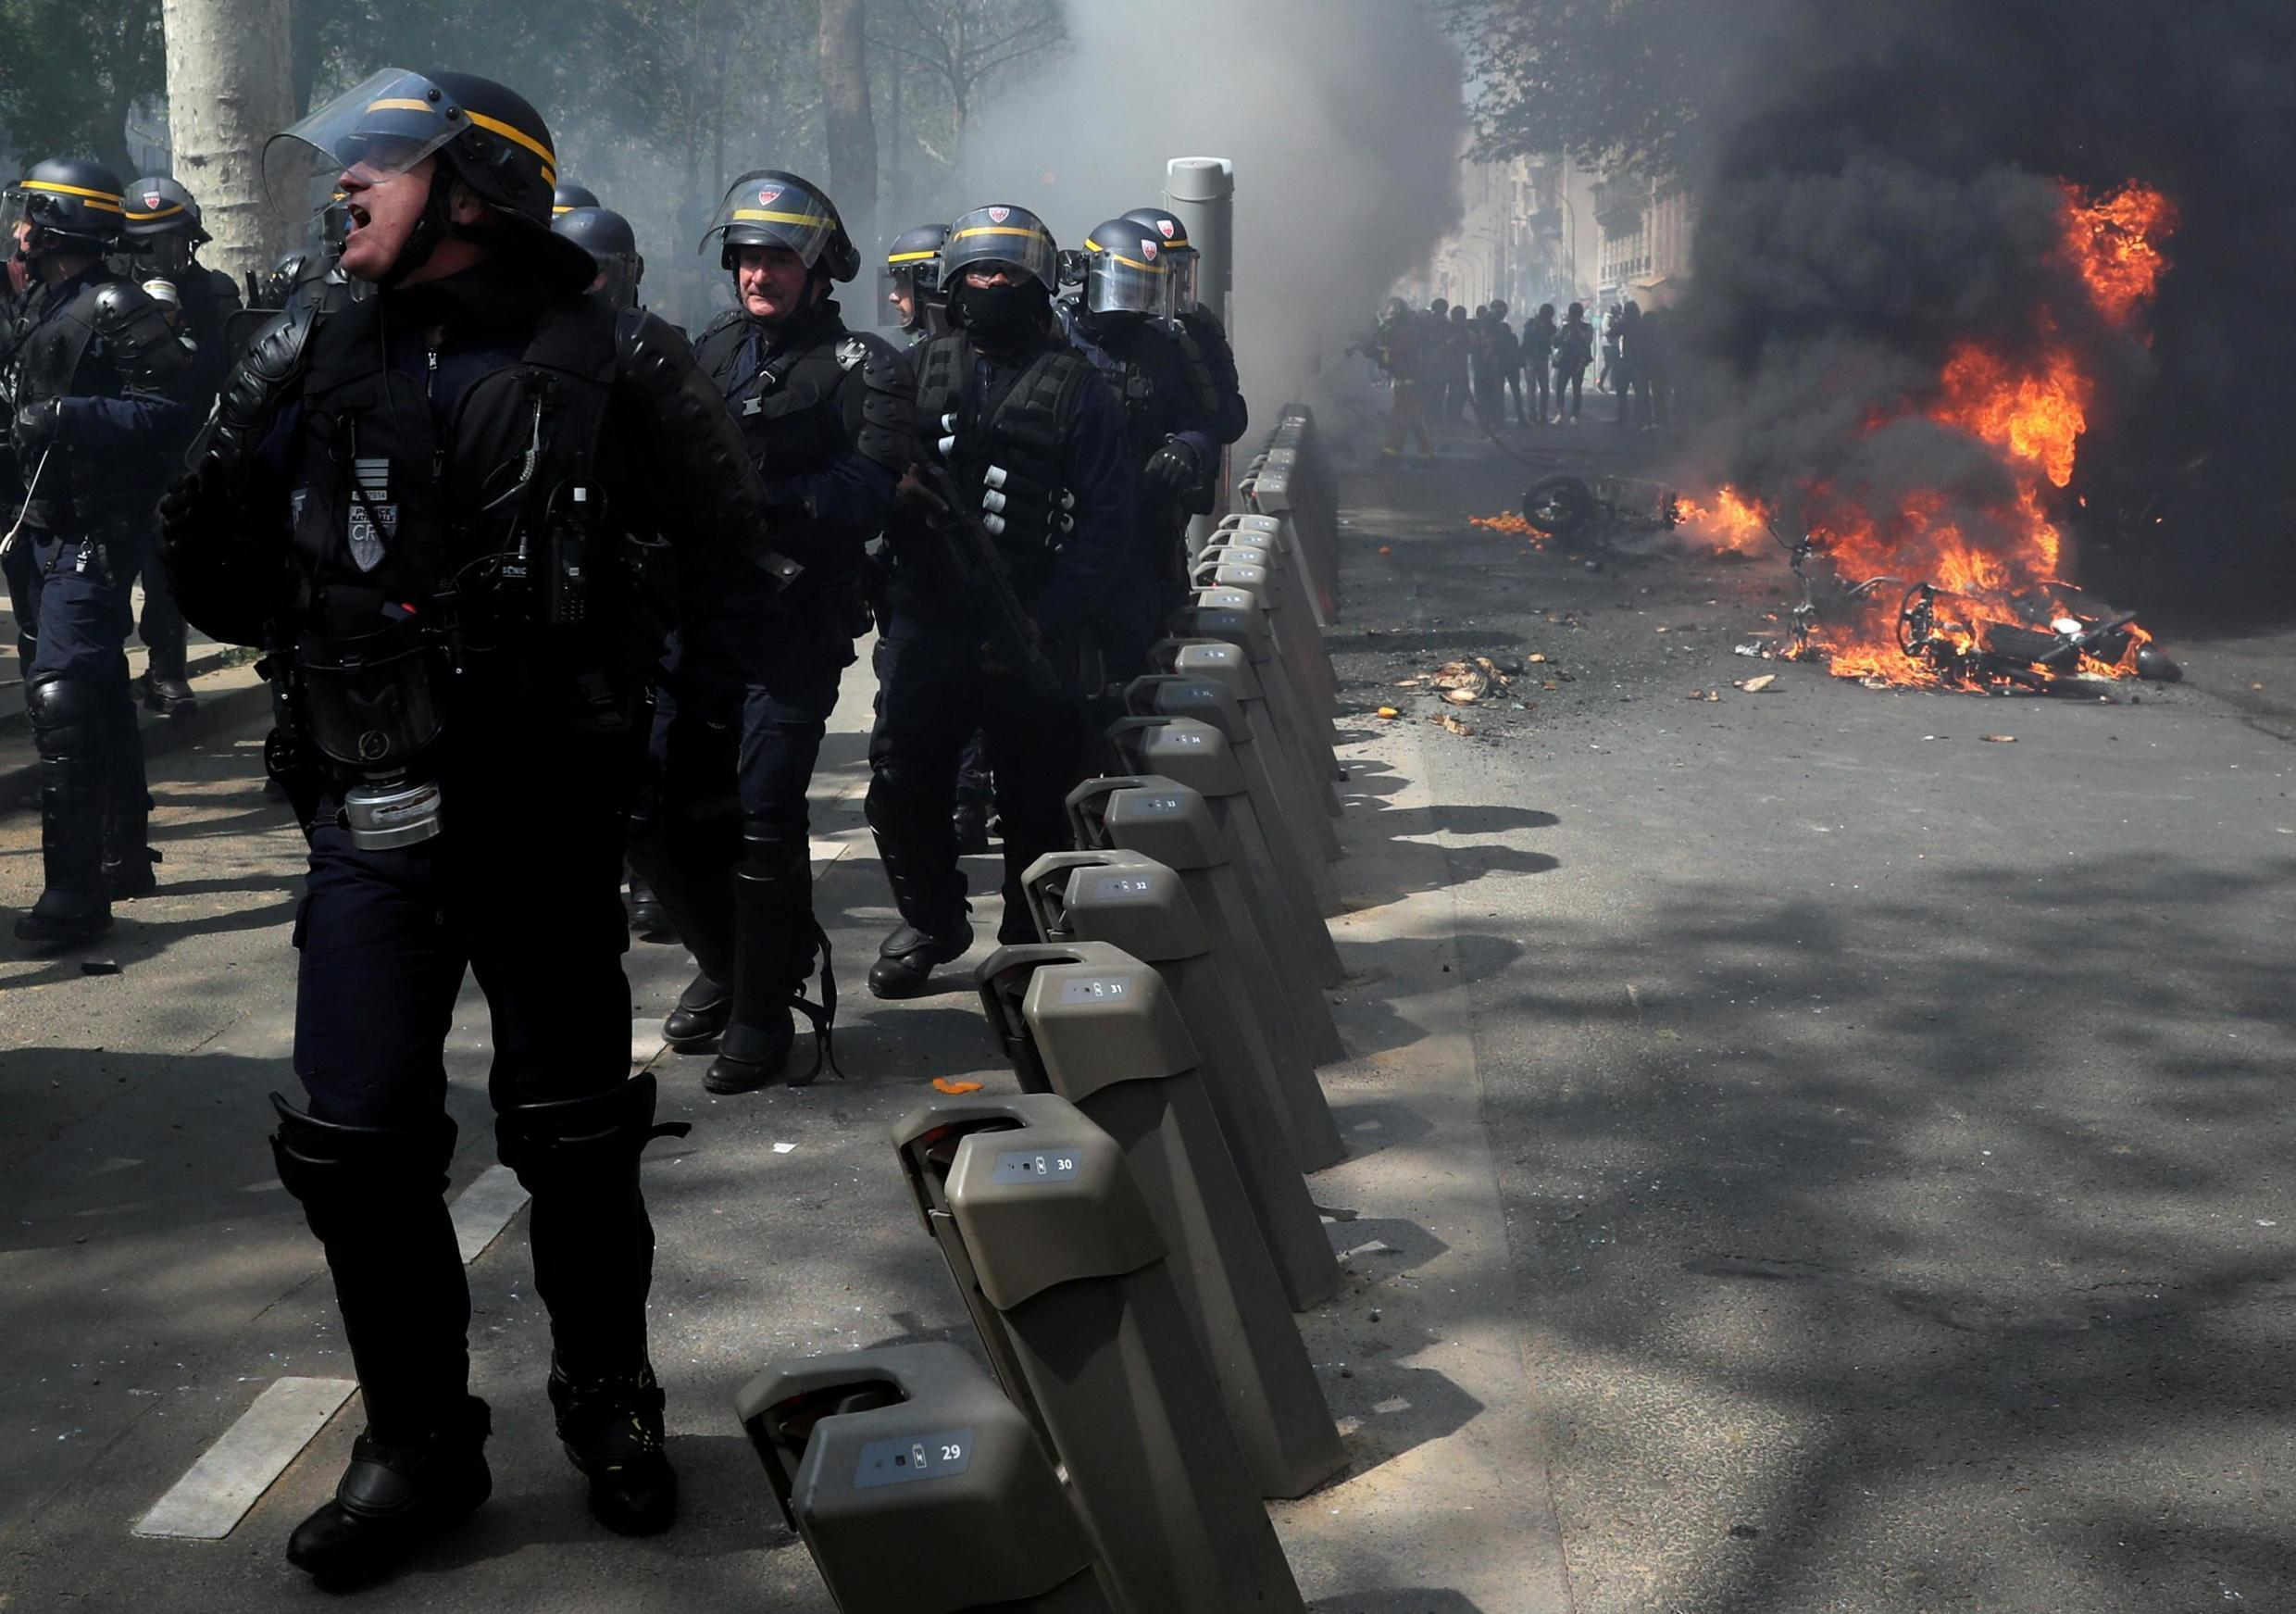 Thousands of French police are expected to be deployed to ensure security at annual May Day demonstrations in Paris.